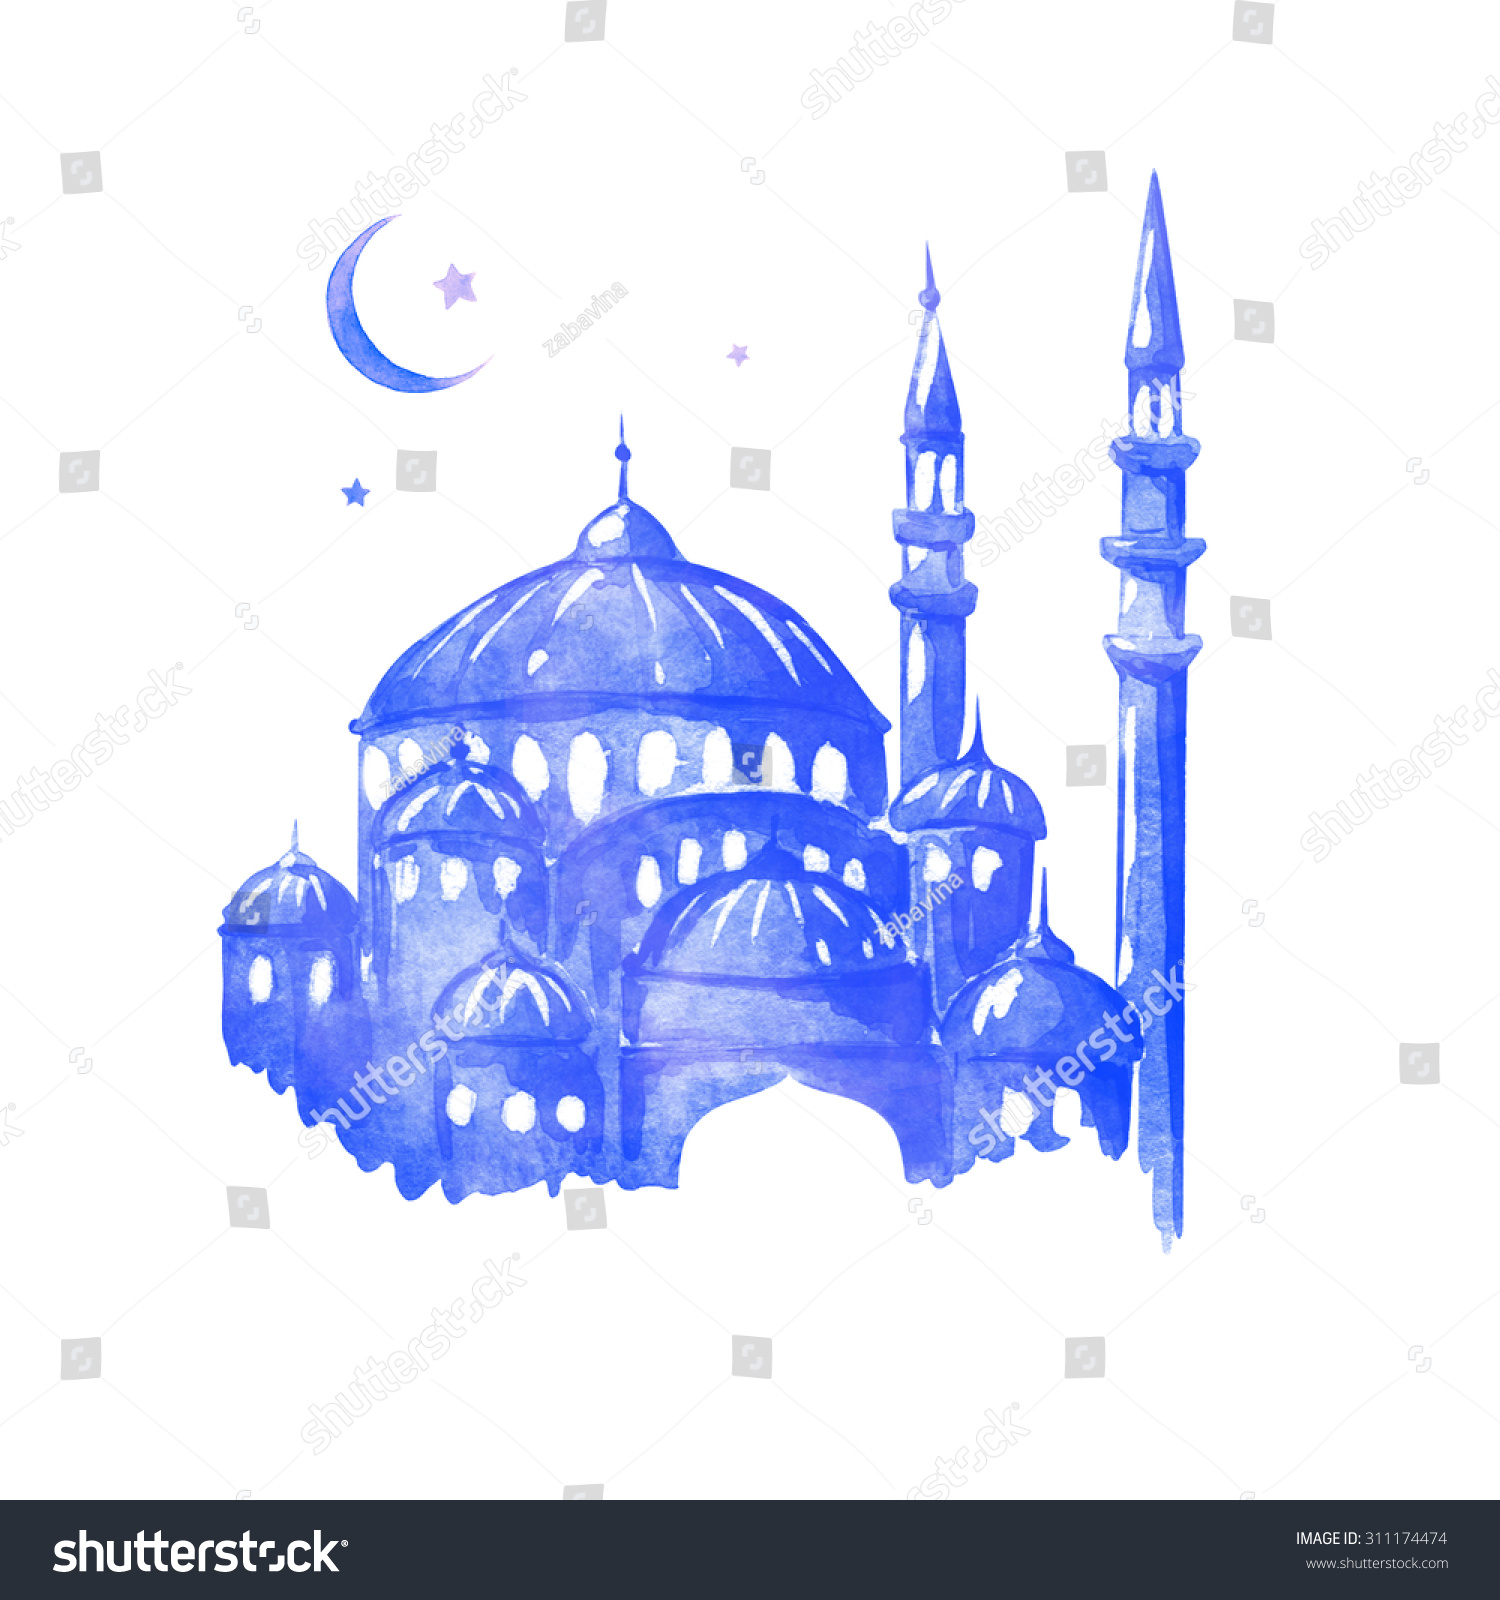 Ramadan Kareem Eid Al Adha Muslim Holiday Mosque Night Ramazan